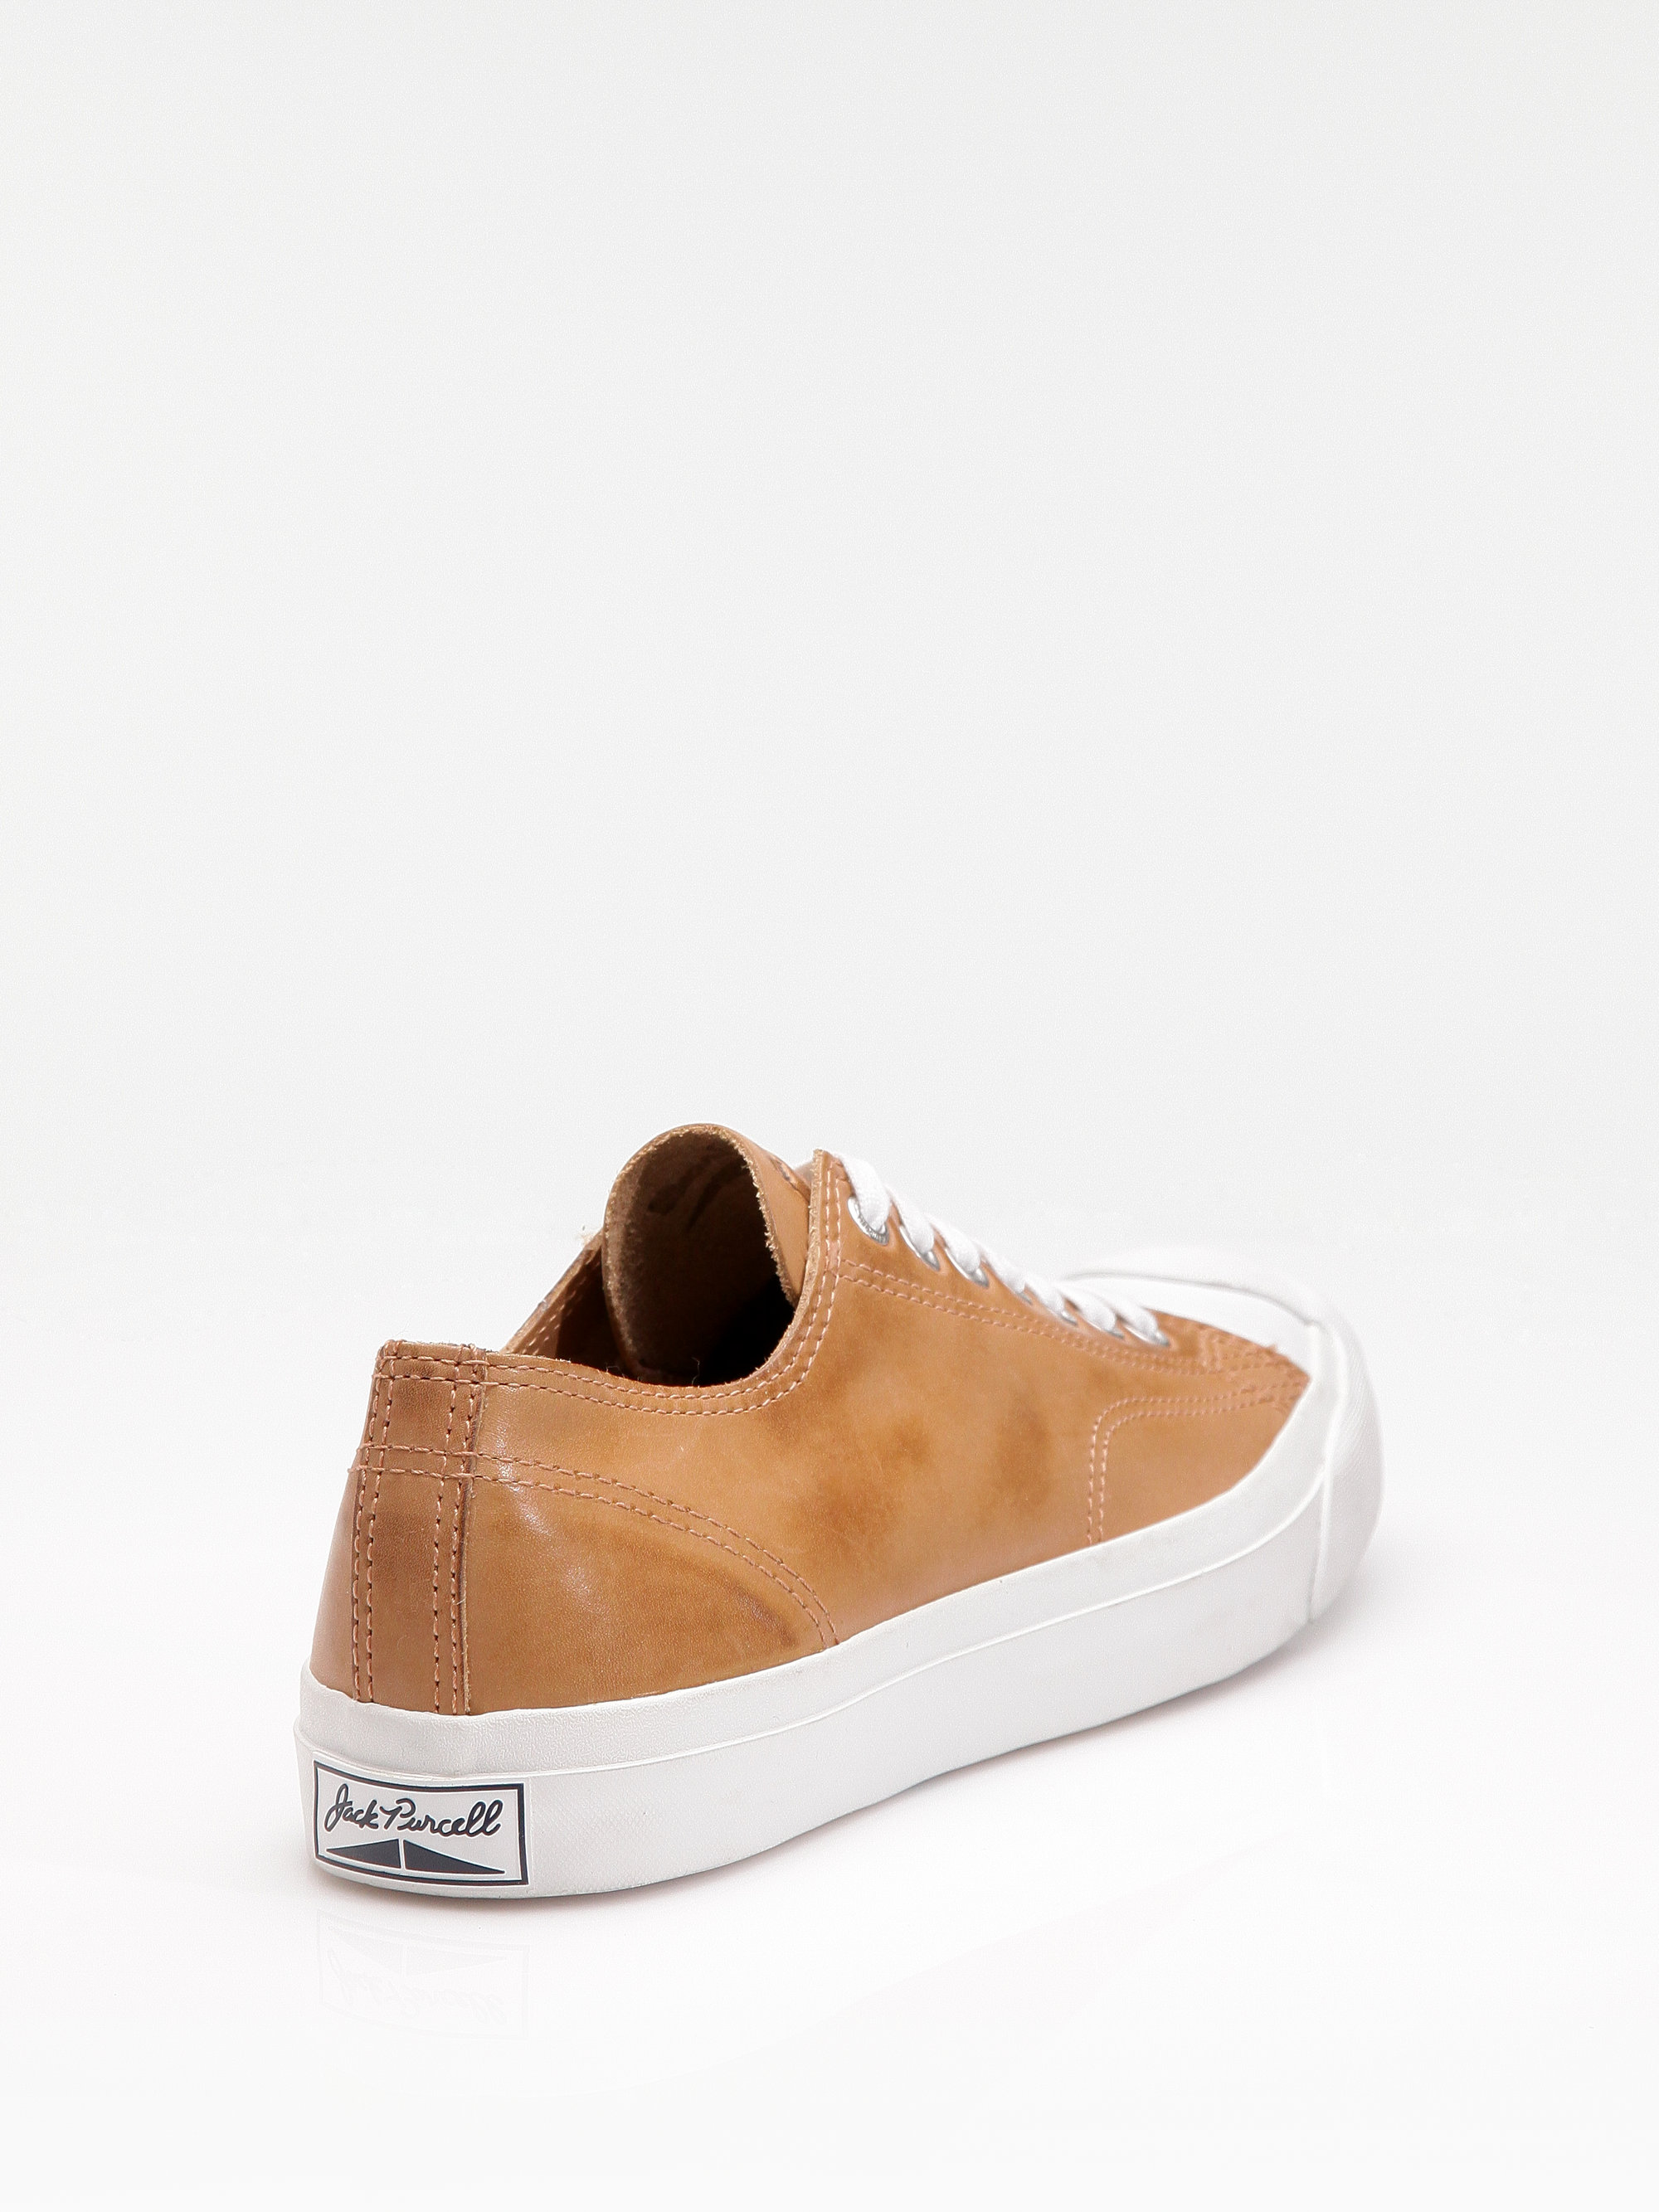 acd2c8bdb157 ... ireland lyst converse jack purcell leather oxfords in brown for men  5881f 22583